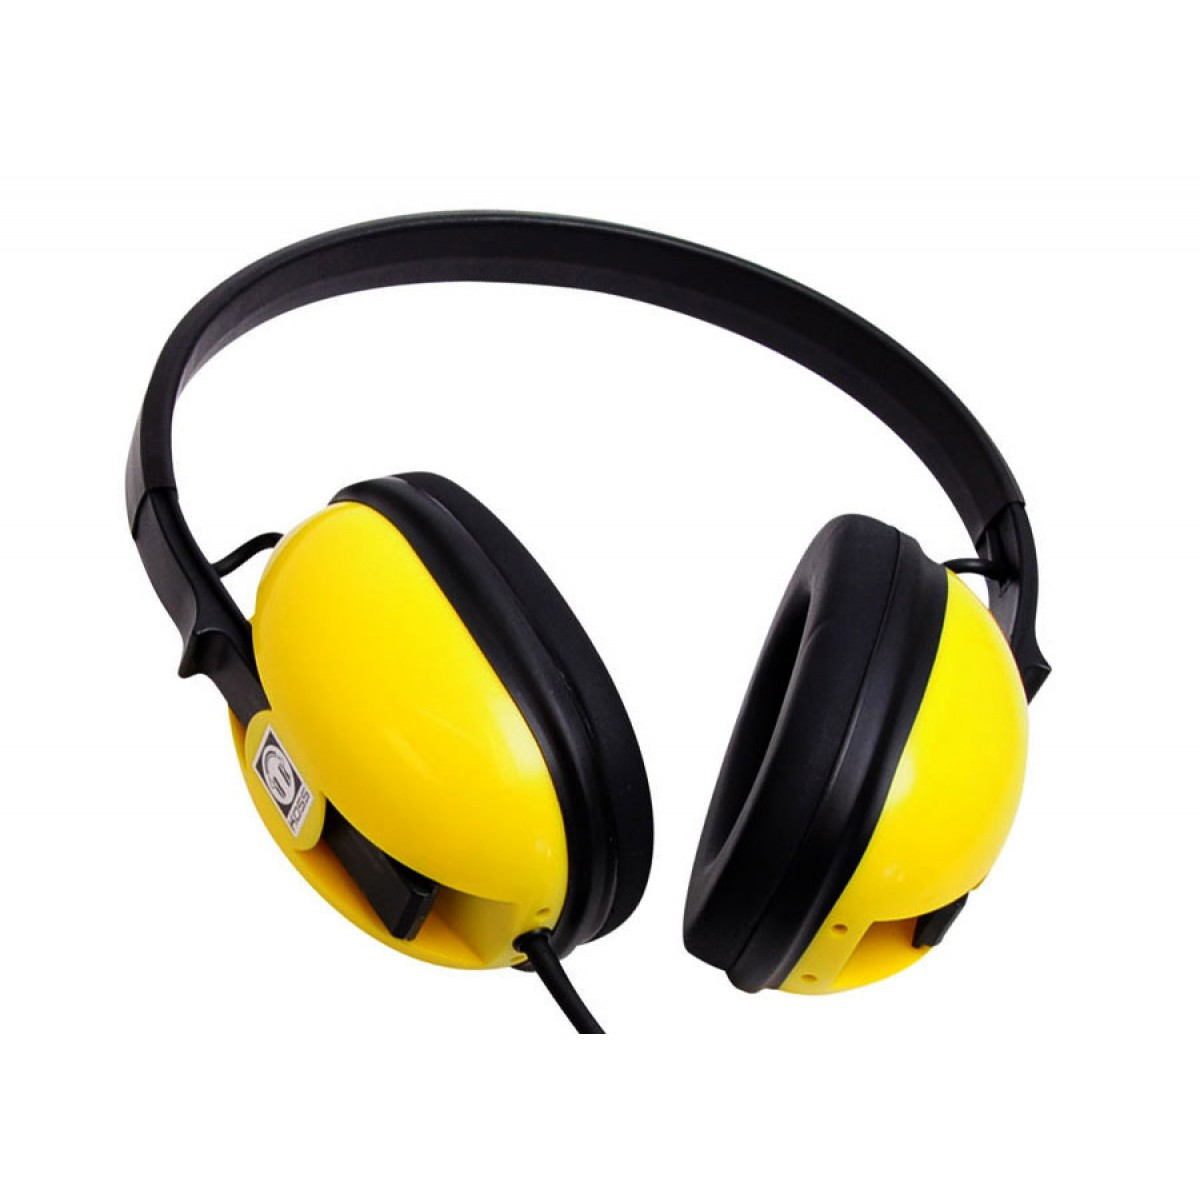 237 30110258_1f metal detecting headphones for sale kellyco  at n-0.co